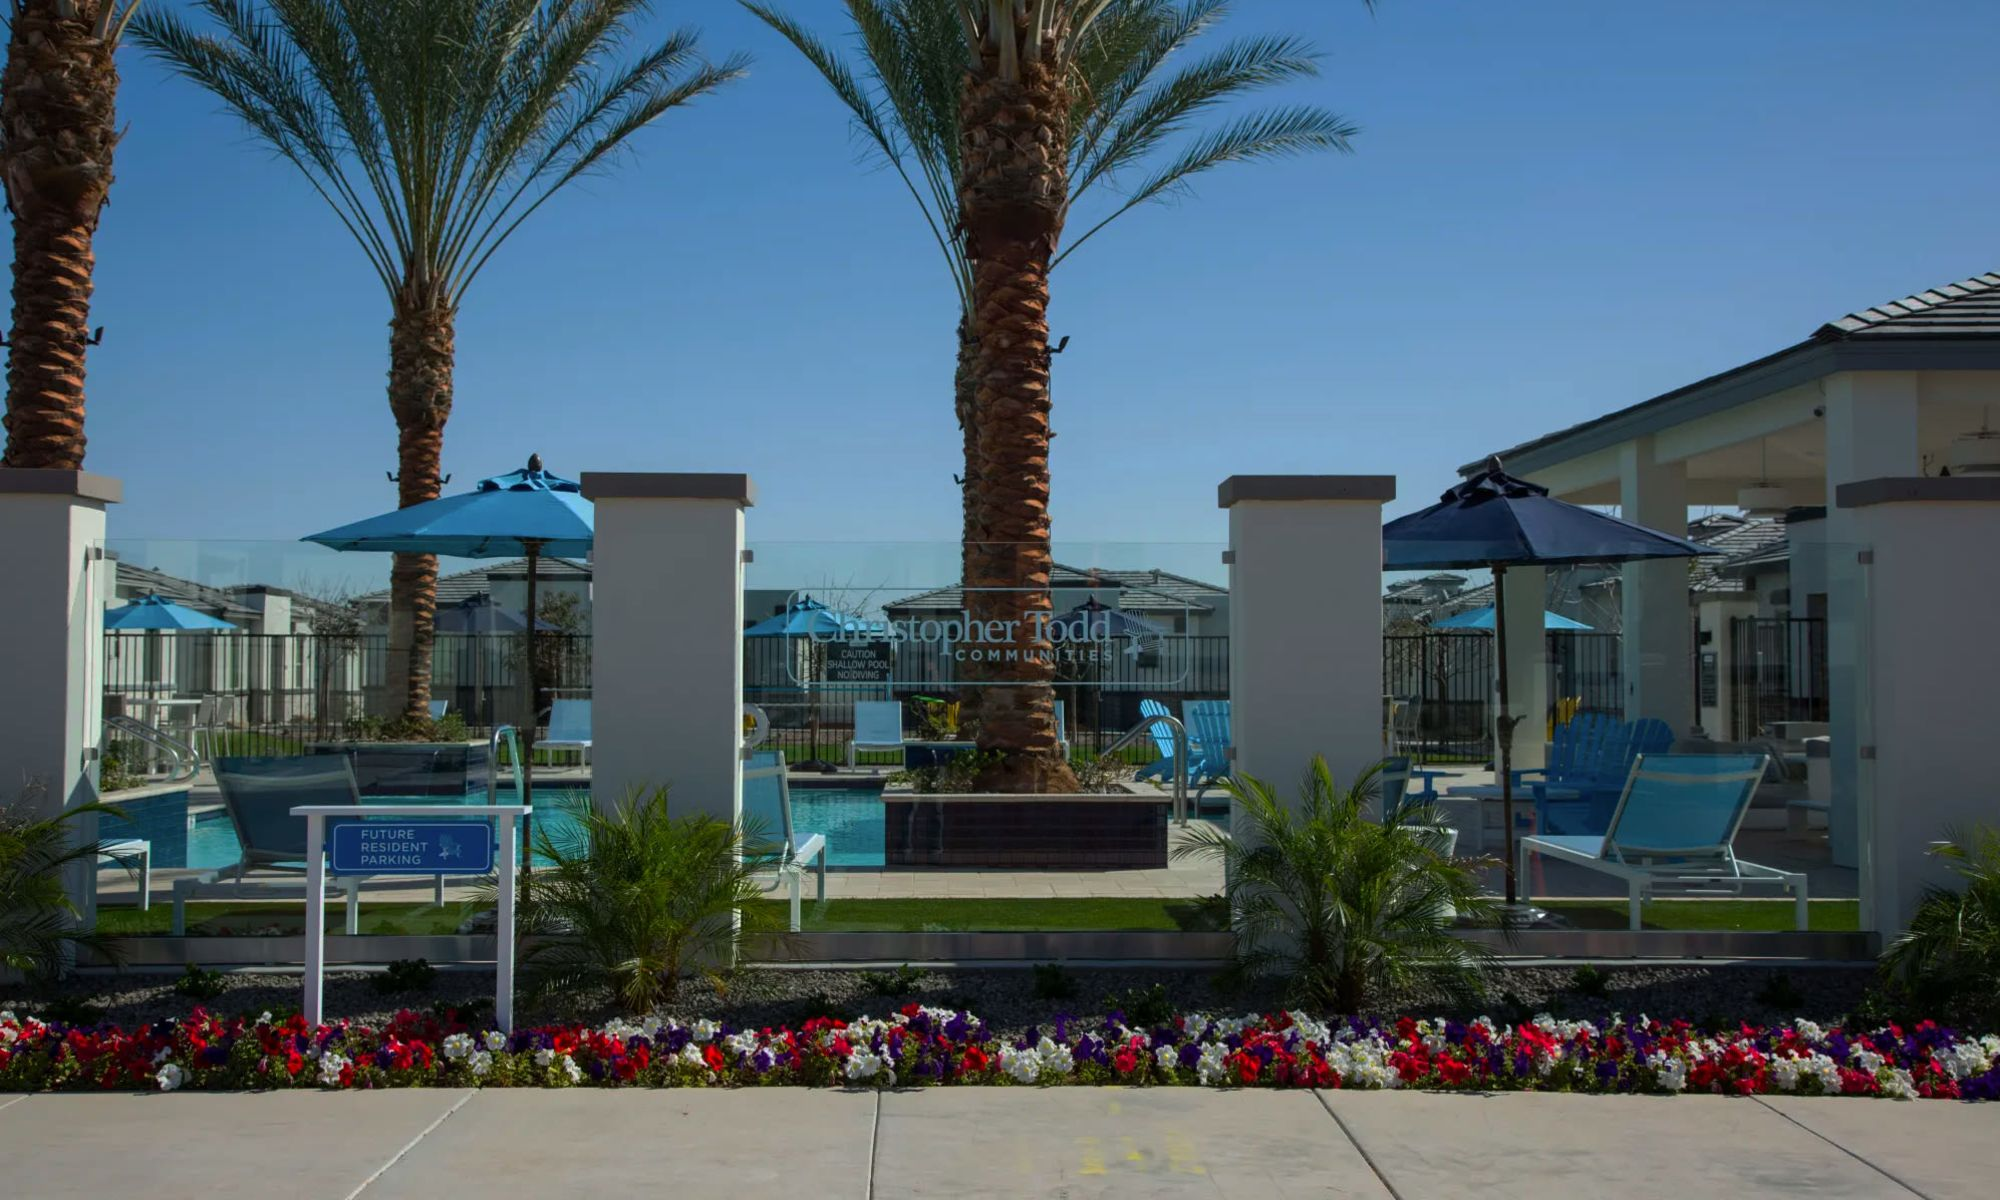 Apartments in Litchfield Park, Arizona at Christopher Todd Communities on Camelback